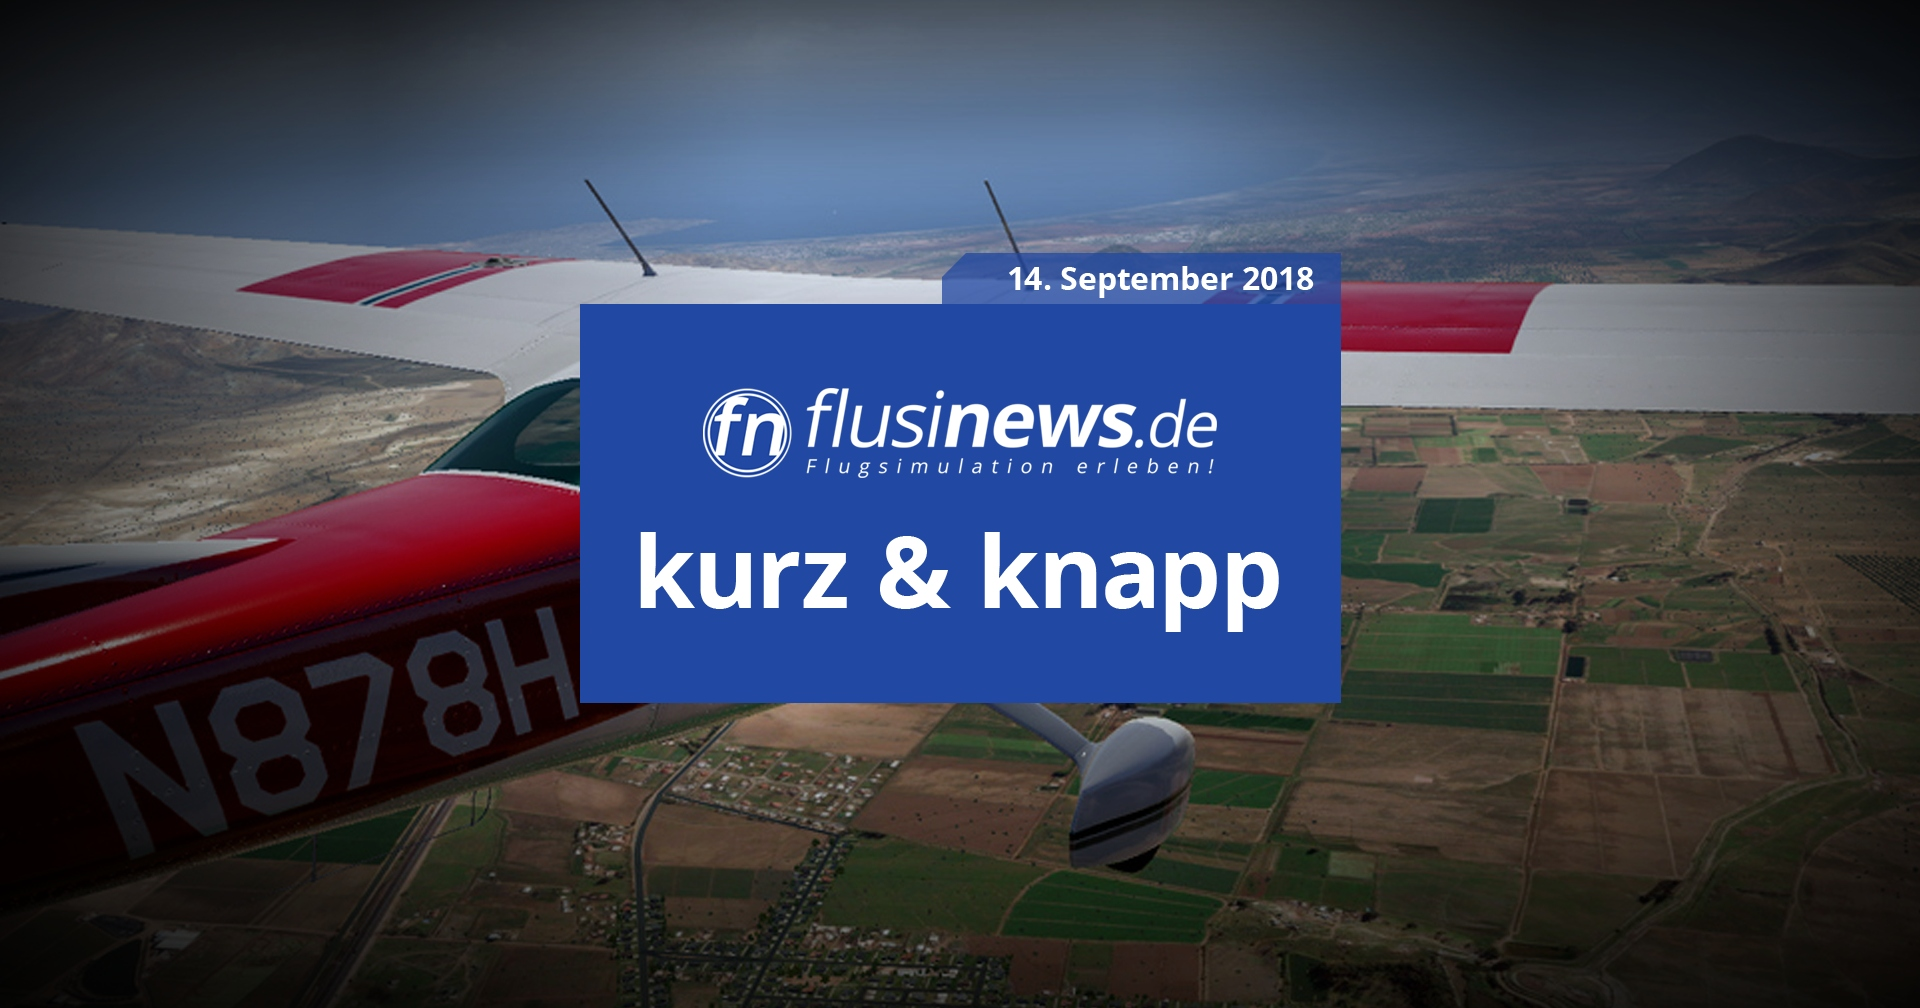 flusinews.de kurz & knapp Episode 19